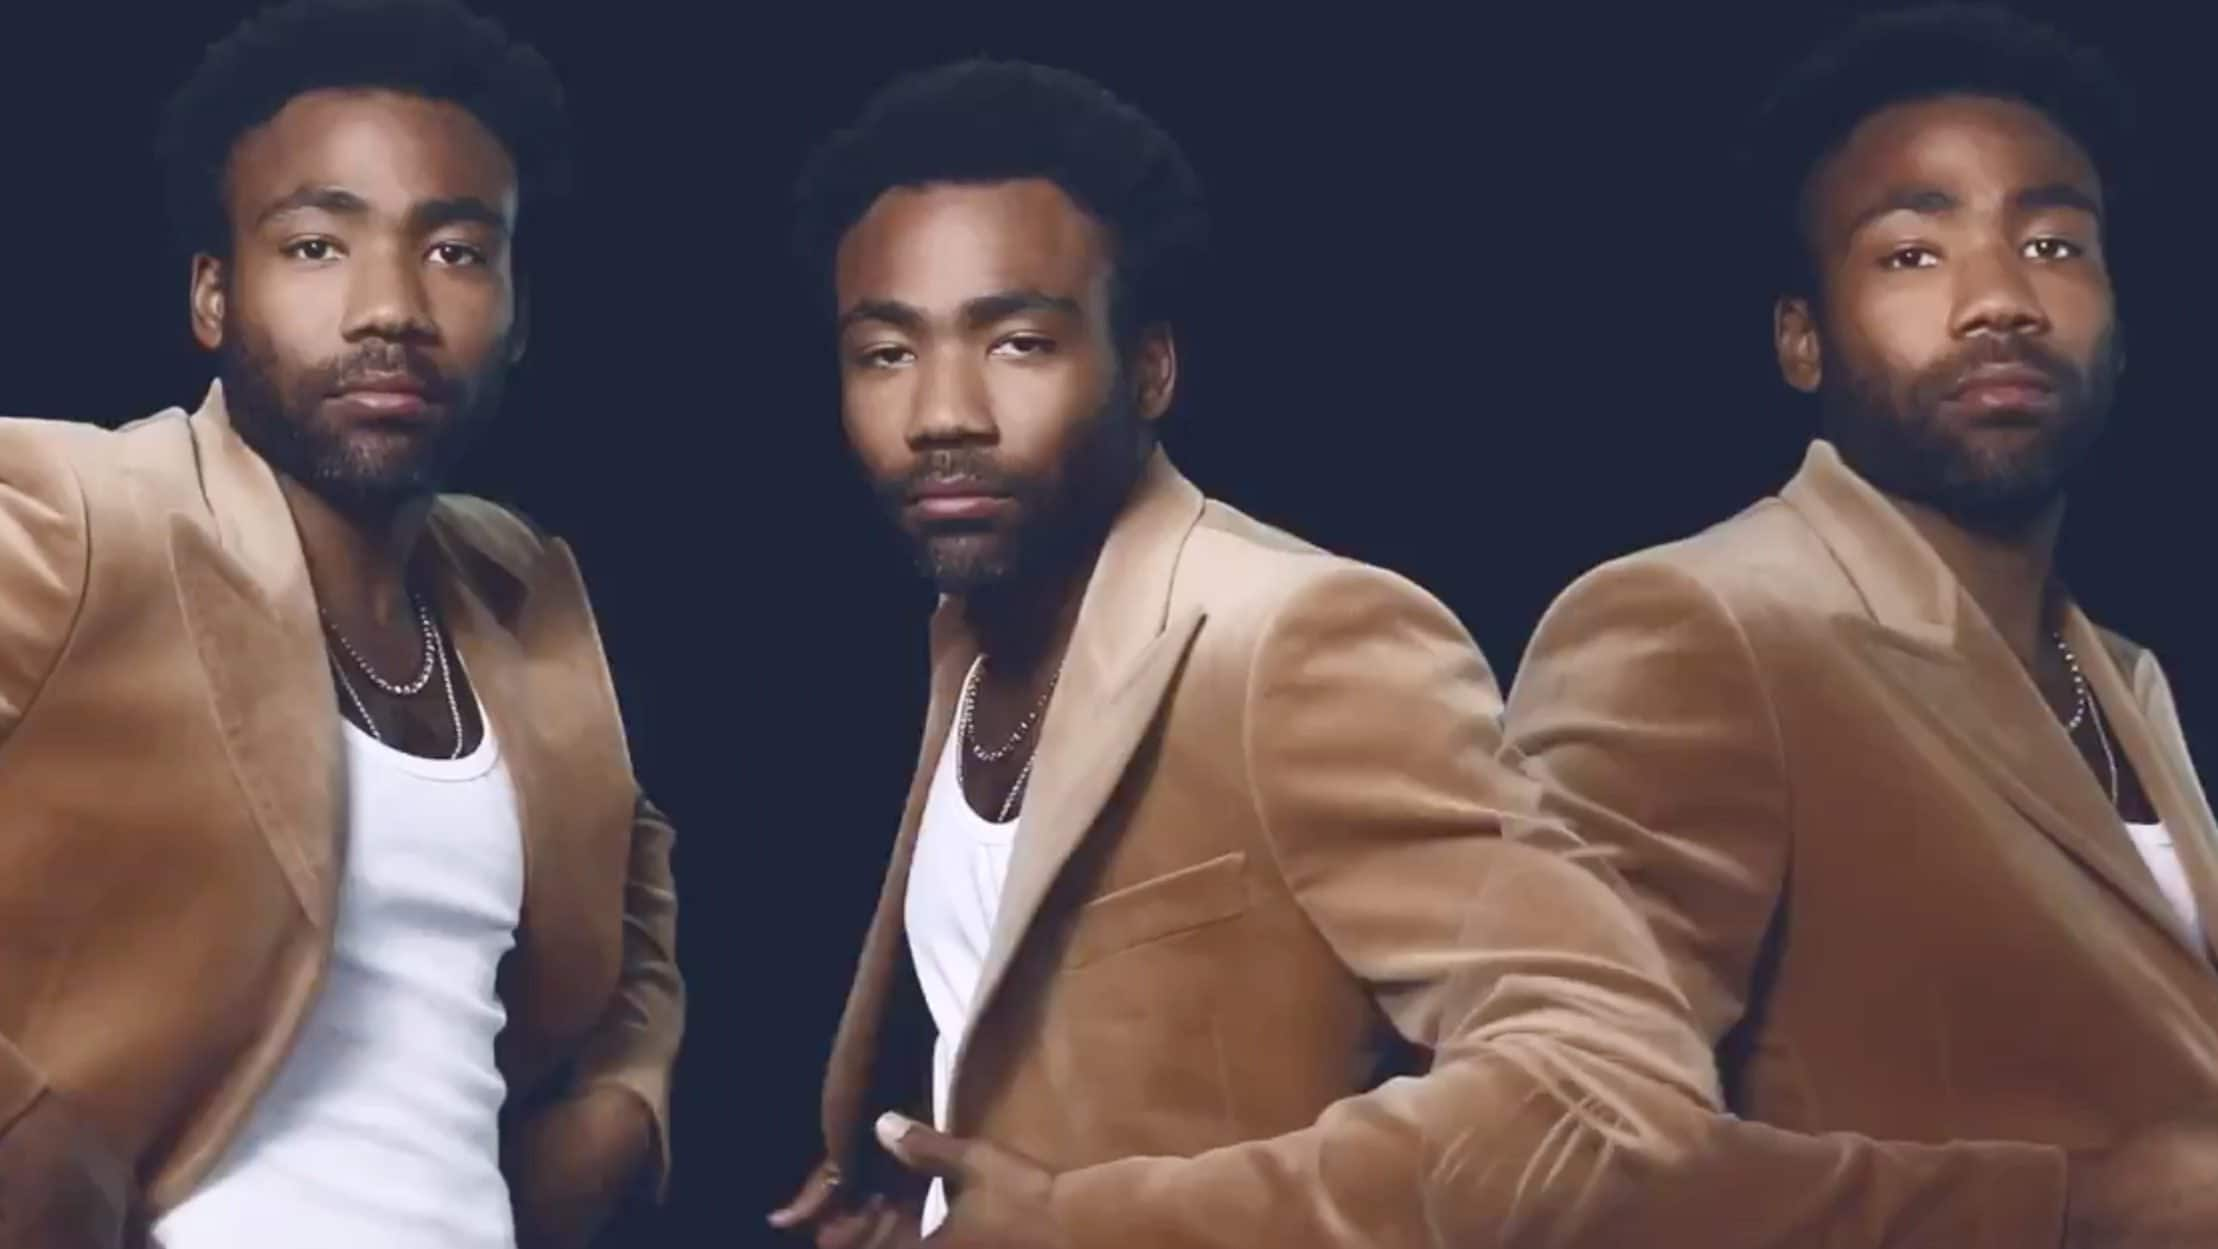 Childish Gambino drops powerful music video